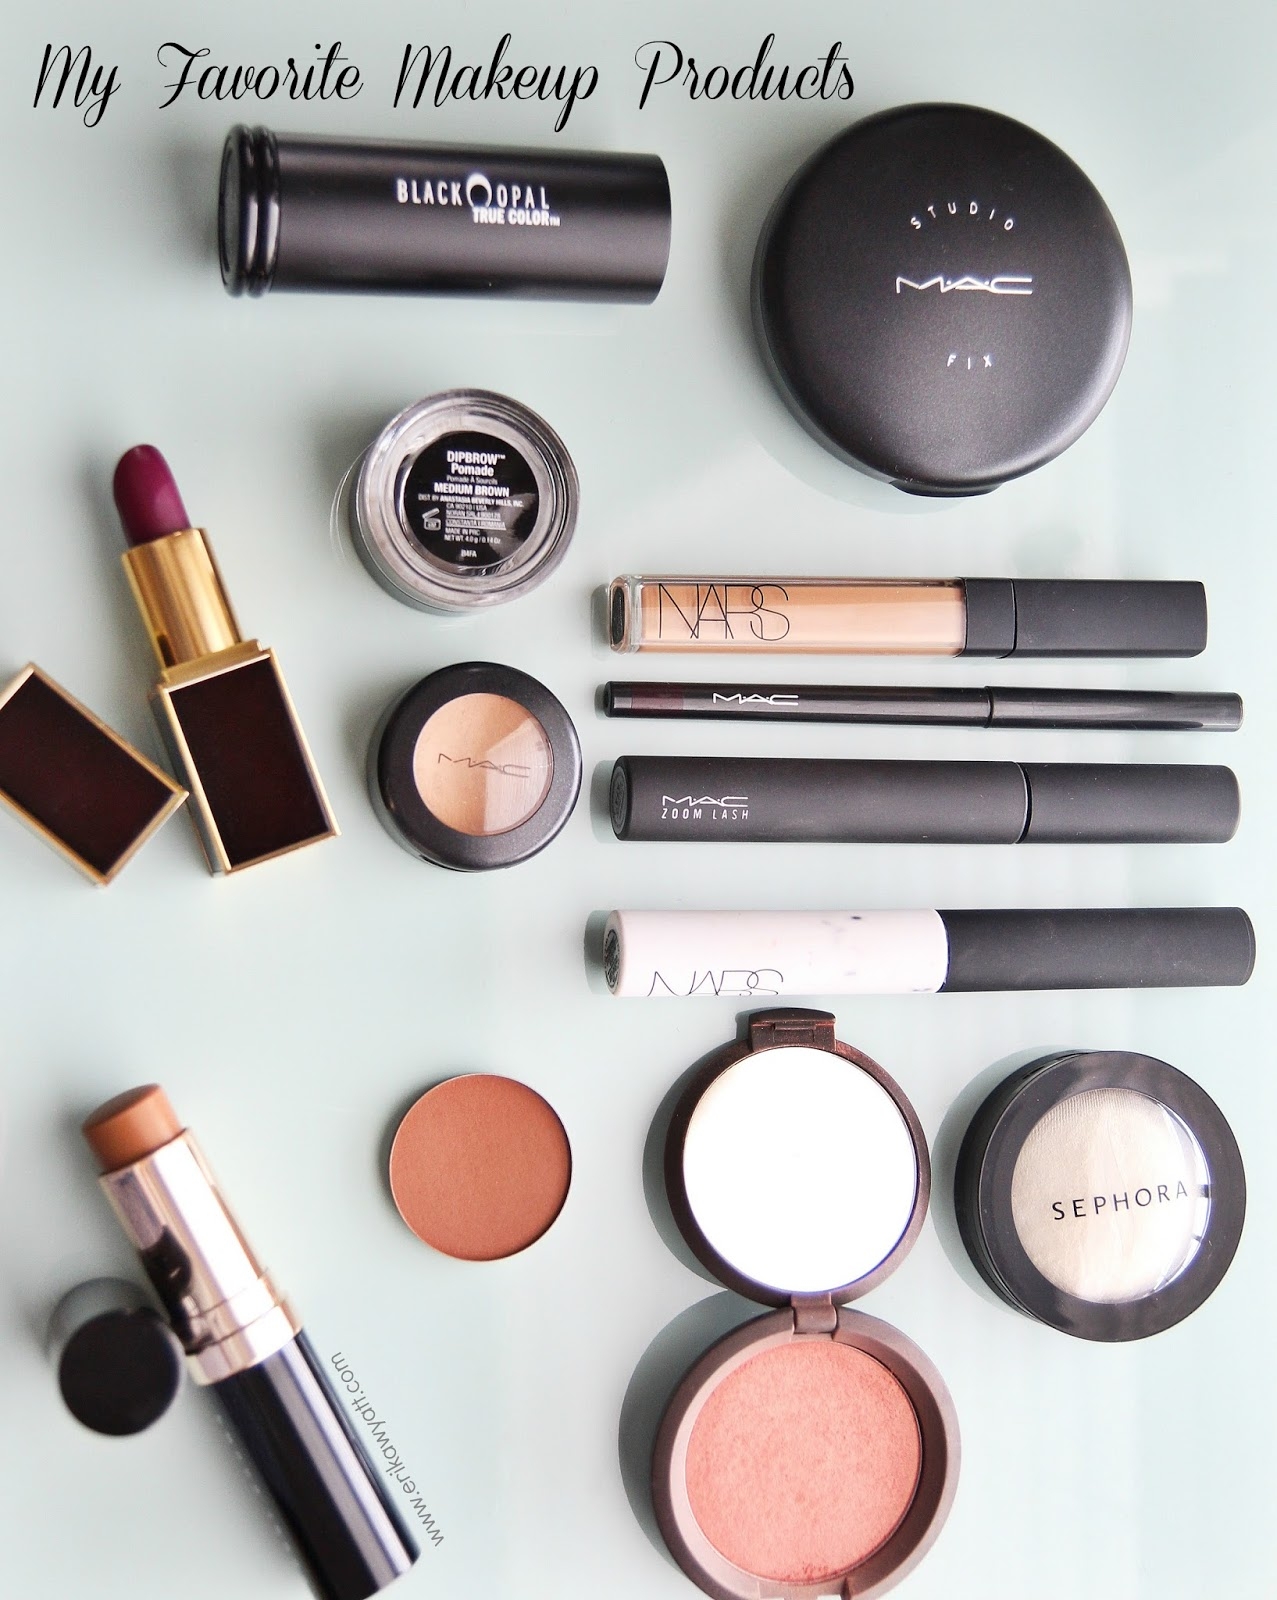 Itserikawyatt: Makeup Essentials #itserikawyatt